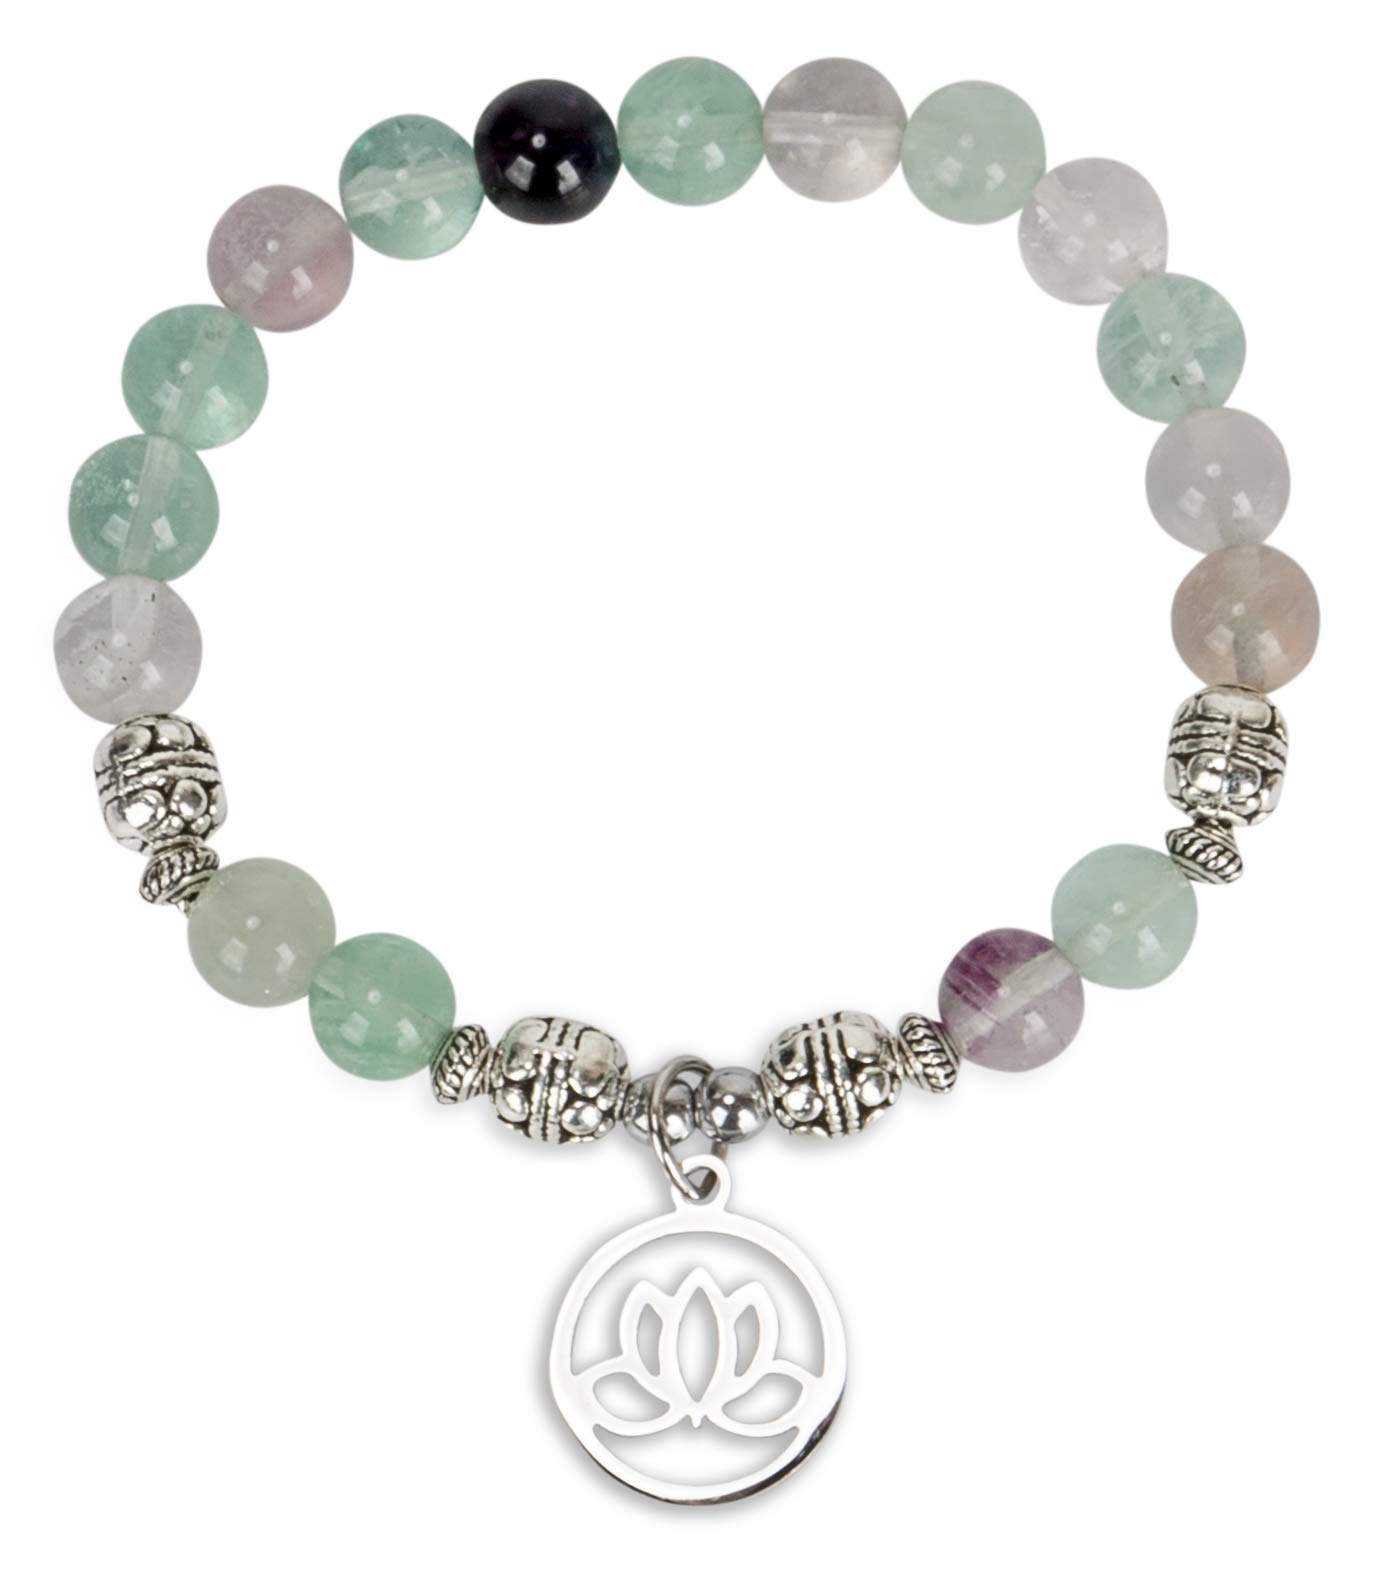 SPUNKYsoul Lotus Crystal Fluorite Healing Energy Bead Bracelet for Women Stainless Steel and Alloy by SPUNKYsoul